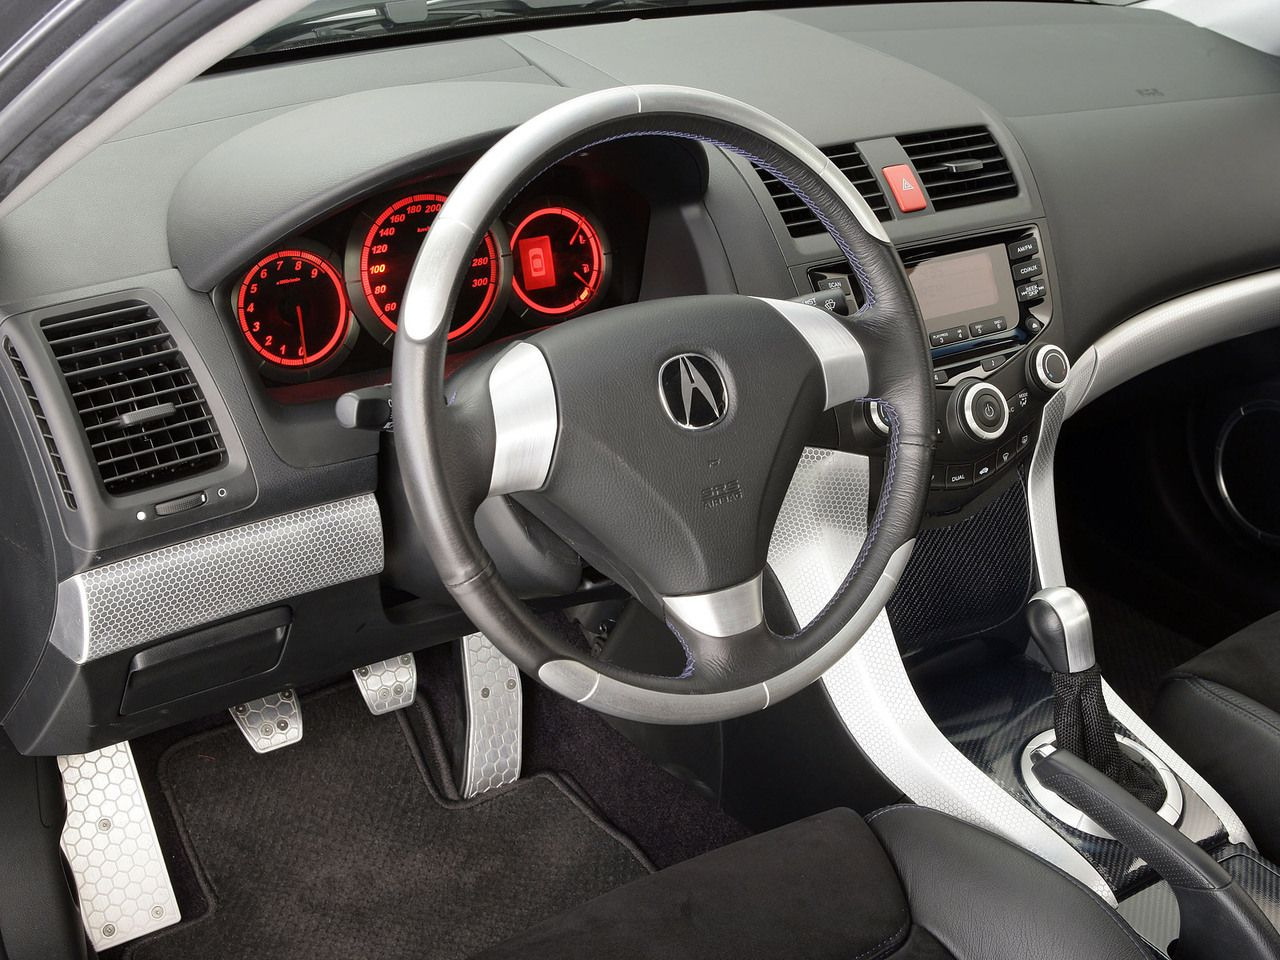 loadedleatherroofdrives great vehicle and fully acura tsx more